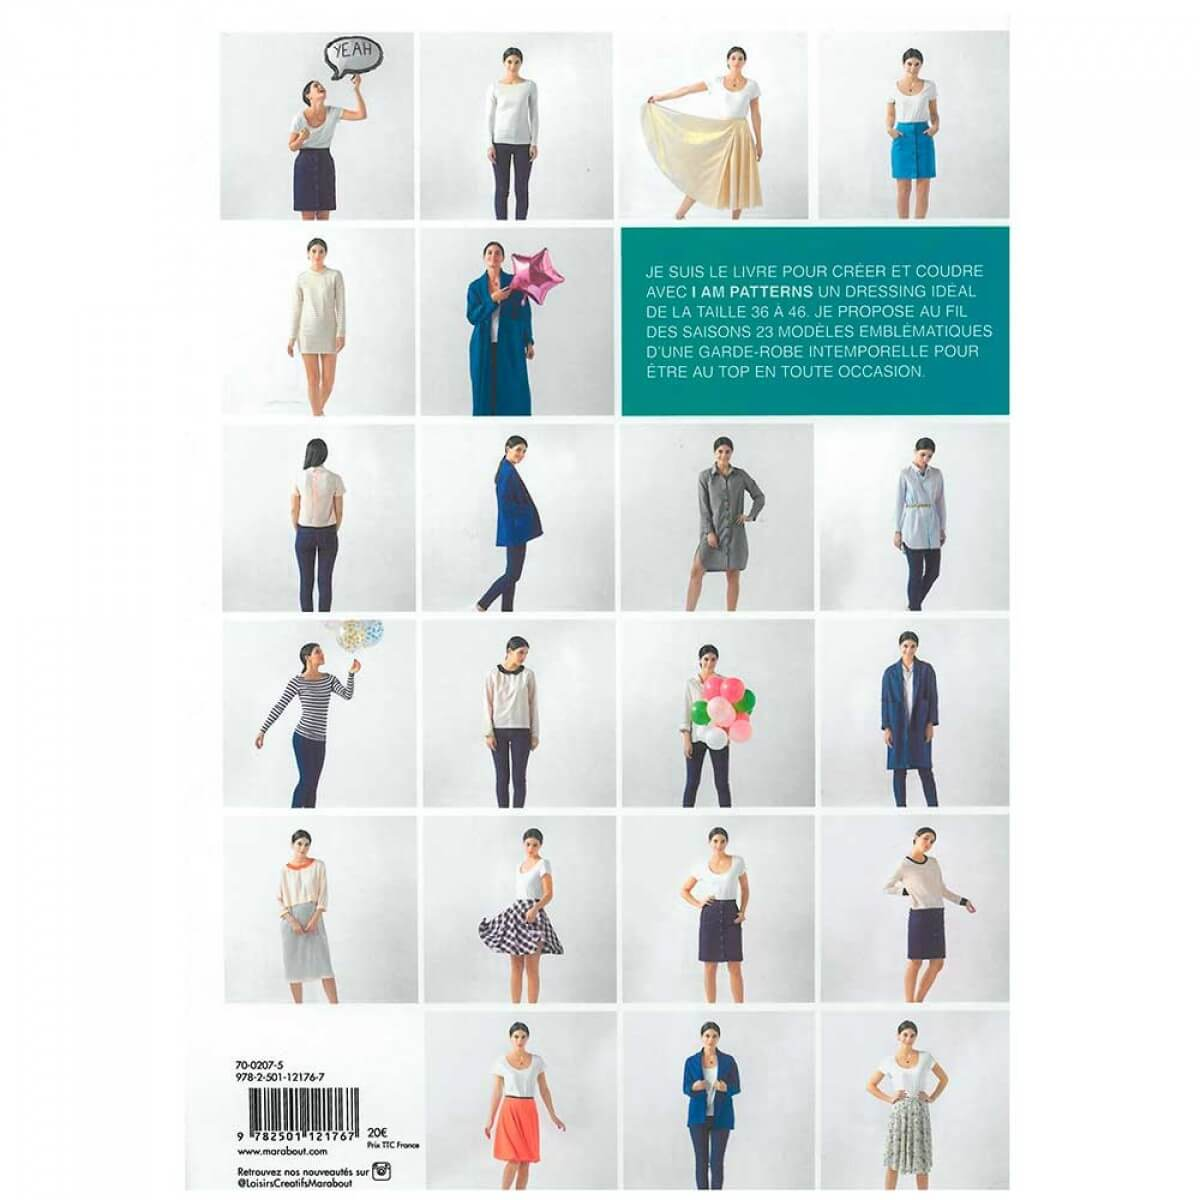 Livre couture dressing id al i am patterns - Livre dressing ideal ...